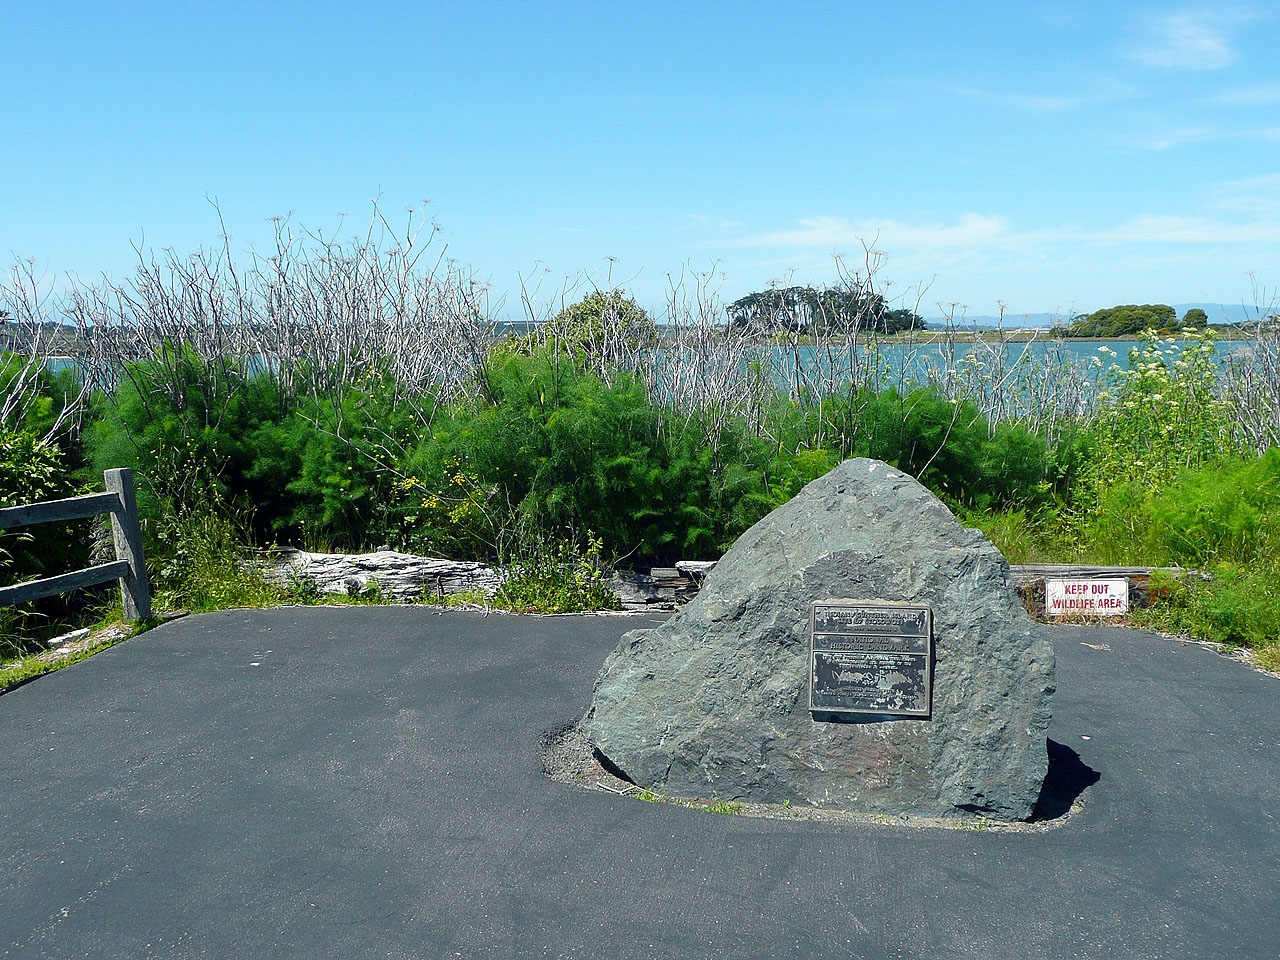 The historical marker is located at the end of the road on the west end of Woodley Island. Indian Island is visible in the background.